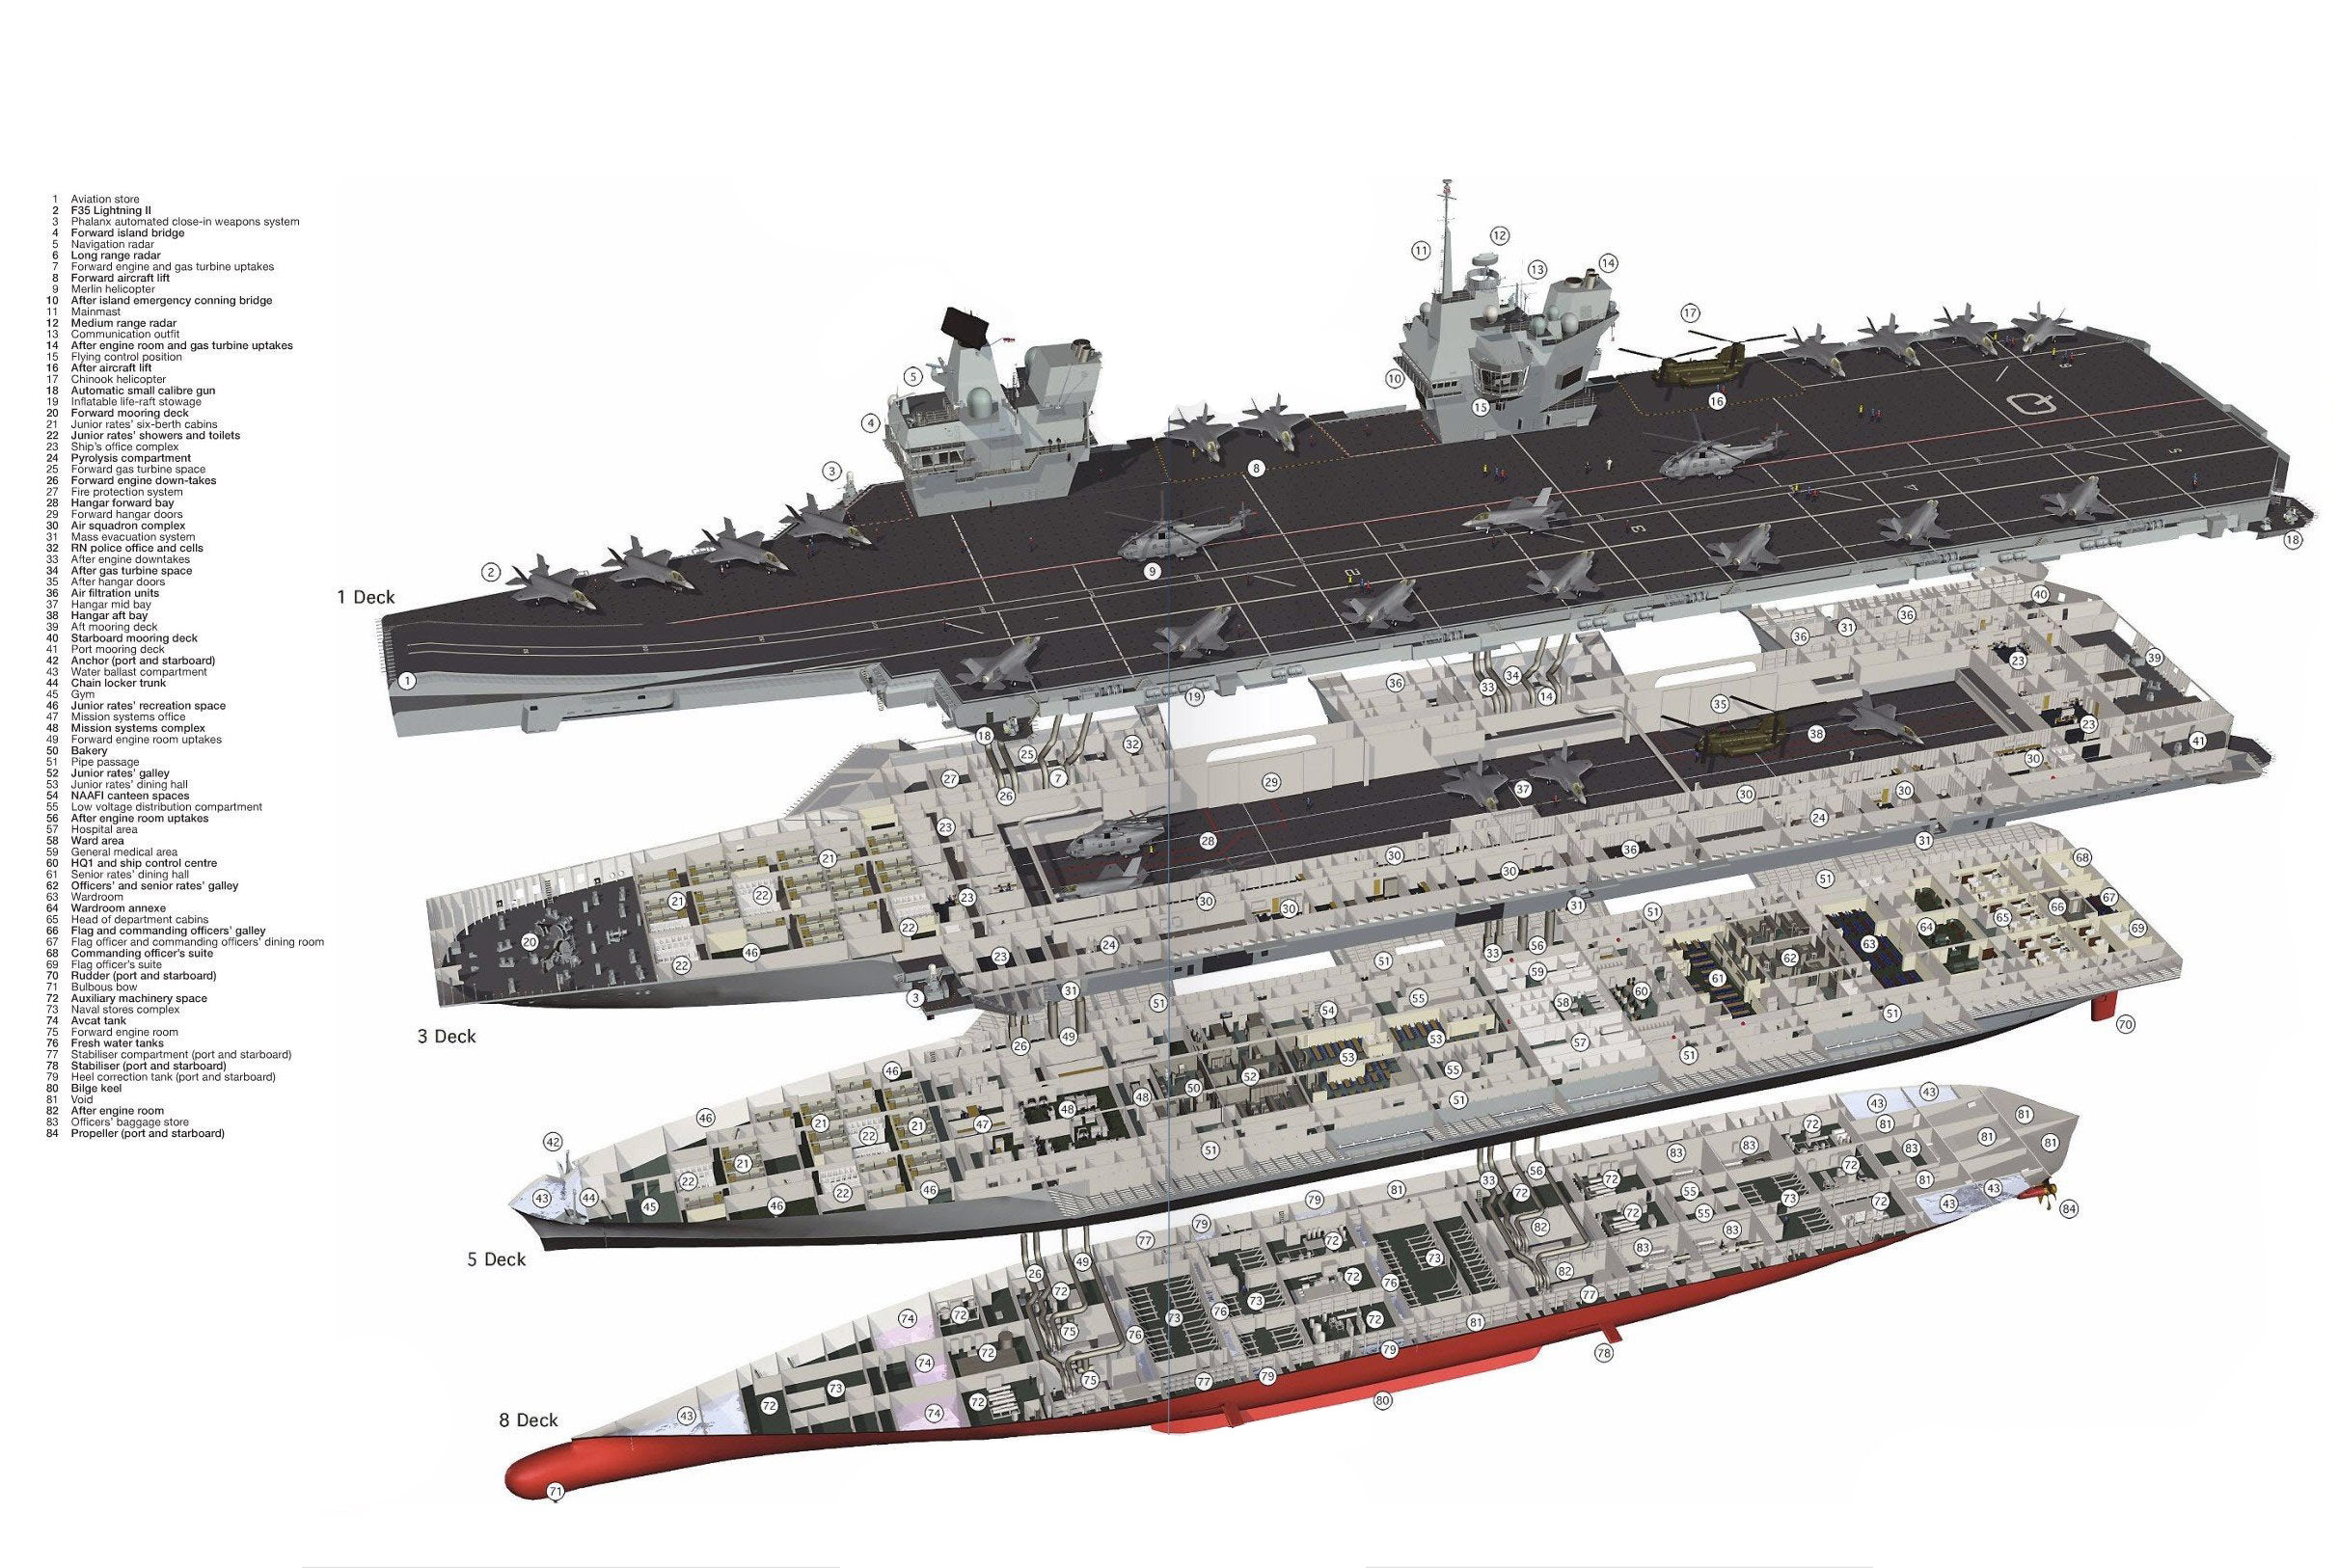 HMS Queen Elizabeth Aircraft Carrier cutaway drawing